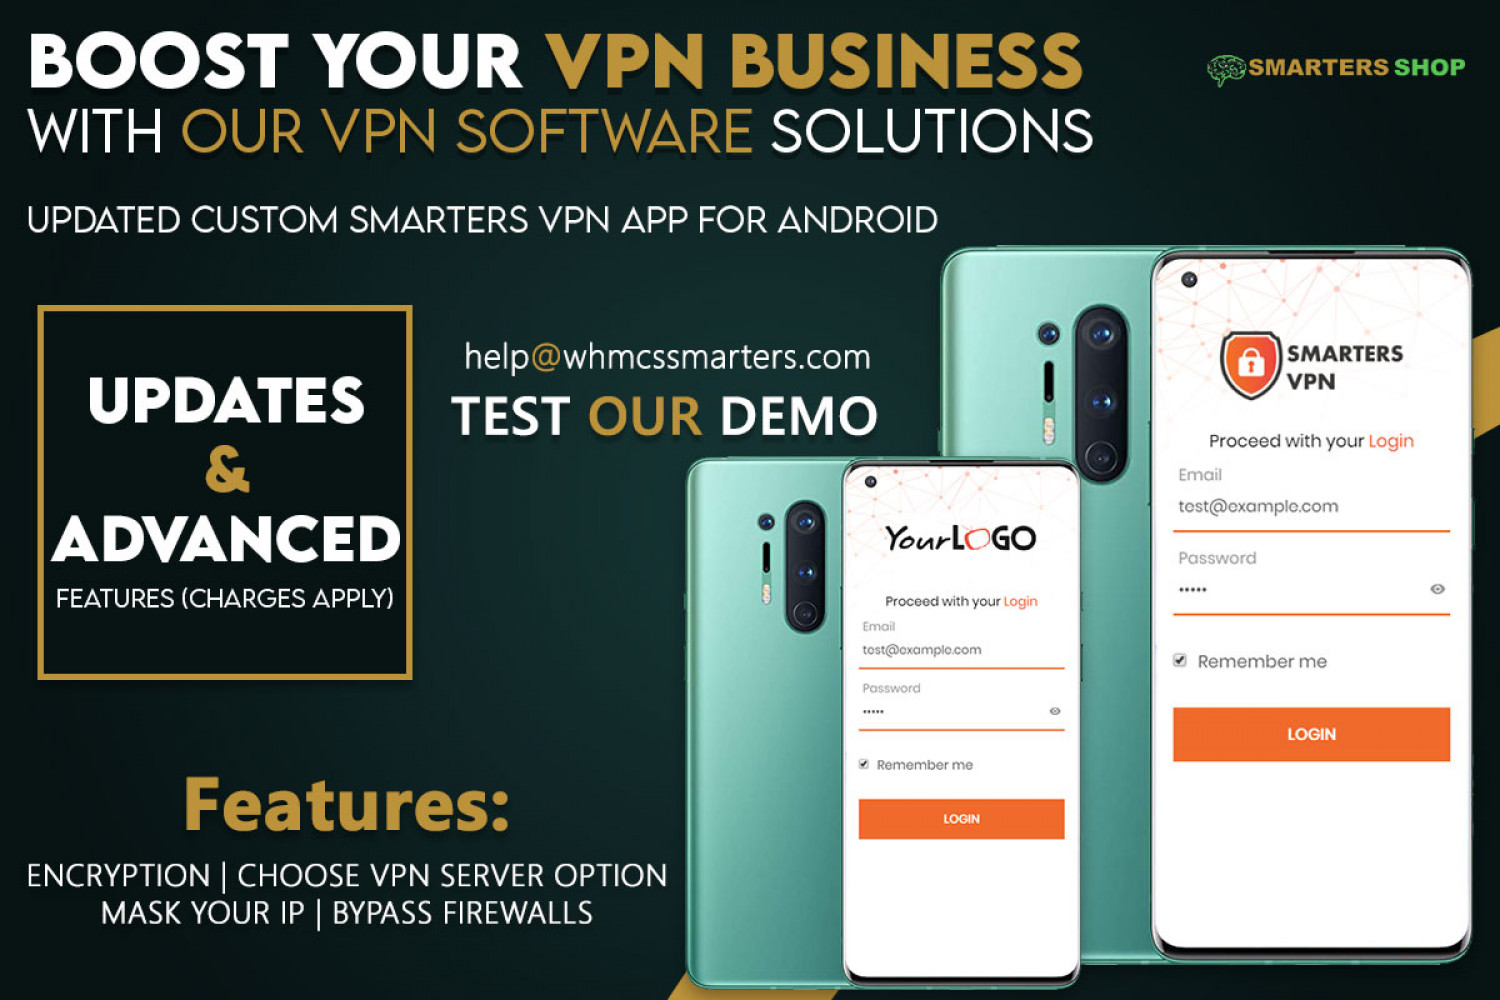 UPDATED CUSTOM SMARTERS VPN APP FOR ANDROID Infographic